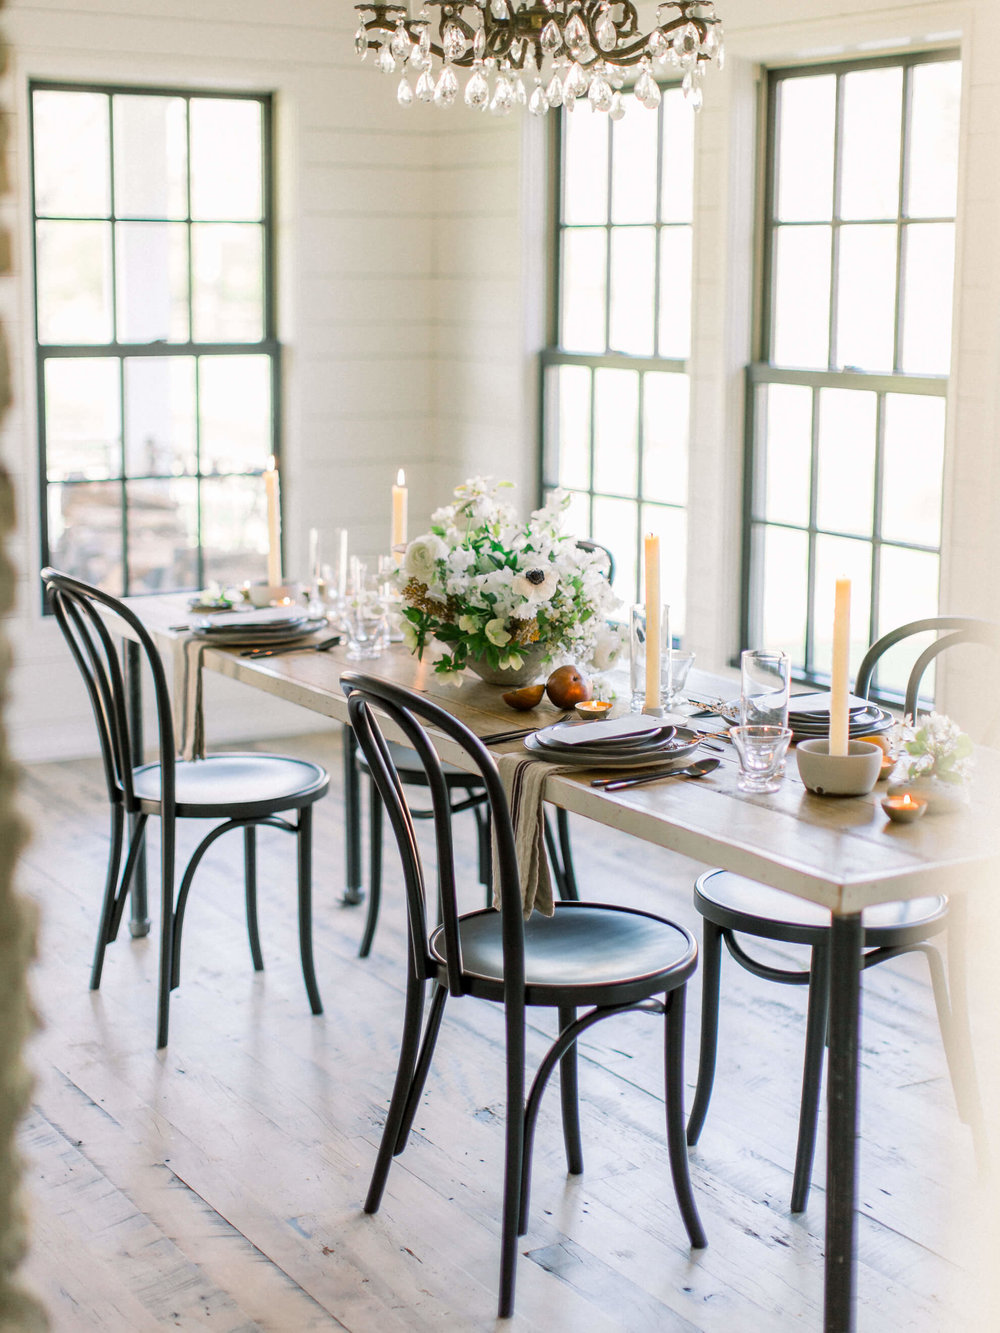 Winter Farmhouse Wedding - Our inspiration for this shoot came as the bareness of winter slowly transitions into the first blooms of spring. We wanted to create the feel of a small, elegant wedding, including the intimate moments as the couple prepared for their day, in this newly restored historic farmhouse just outside of Nashville, Tennessee. The home is filled with original details juxtaposed with modern farmhouse finishes that marry old and new. We designed with a harmonious color palette of soft whites paired with elegant grays, and deep blush tones with subtle hints of black. The details included a marriage of modern handmade ceramics, moody candlelight, the clean lines of black cafe chairs, florals created with heirloom roses and quince, and feminine blooms of light and airy sweet pea and anemone.